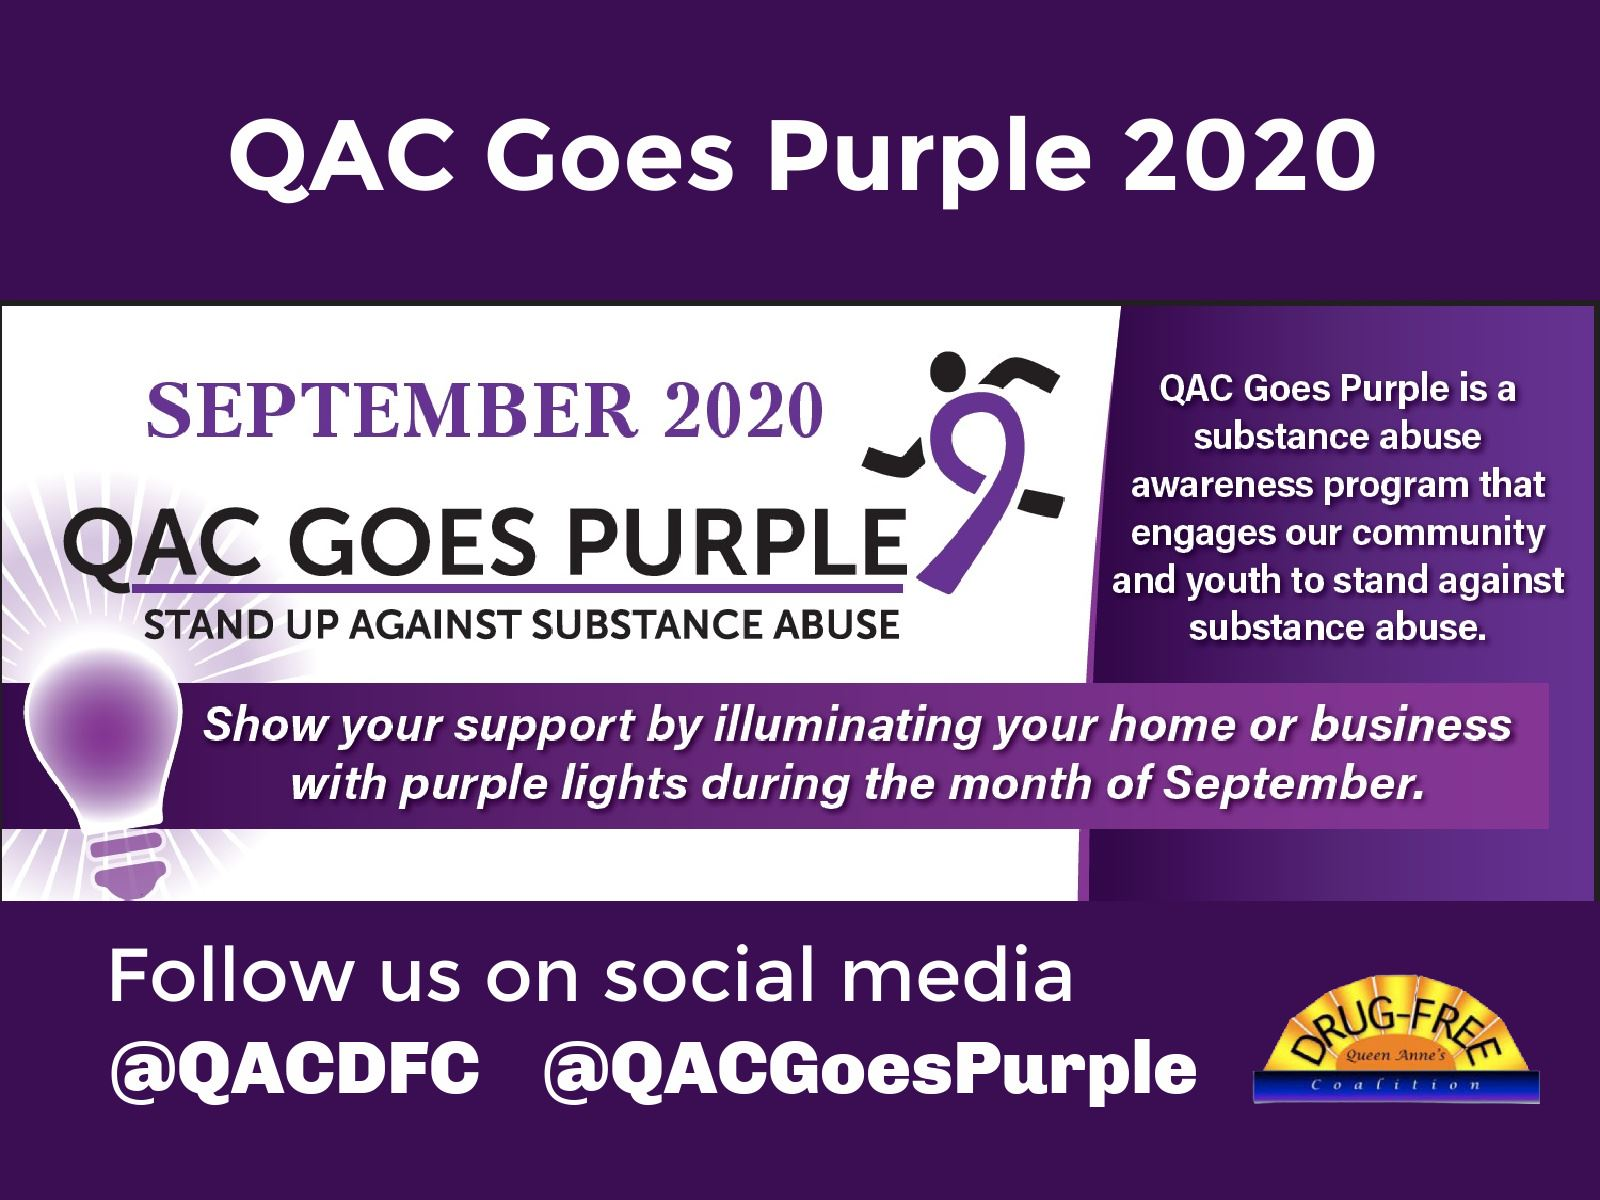 QAC Goes Purple 2020